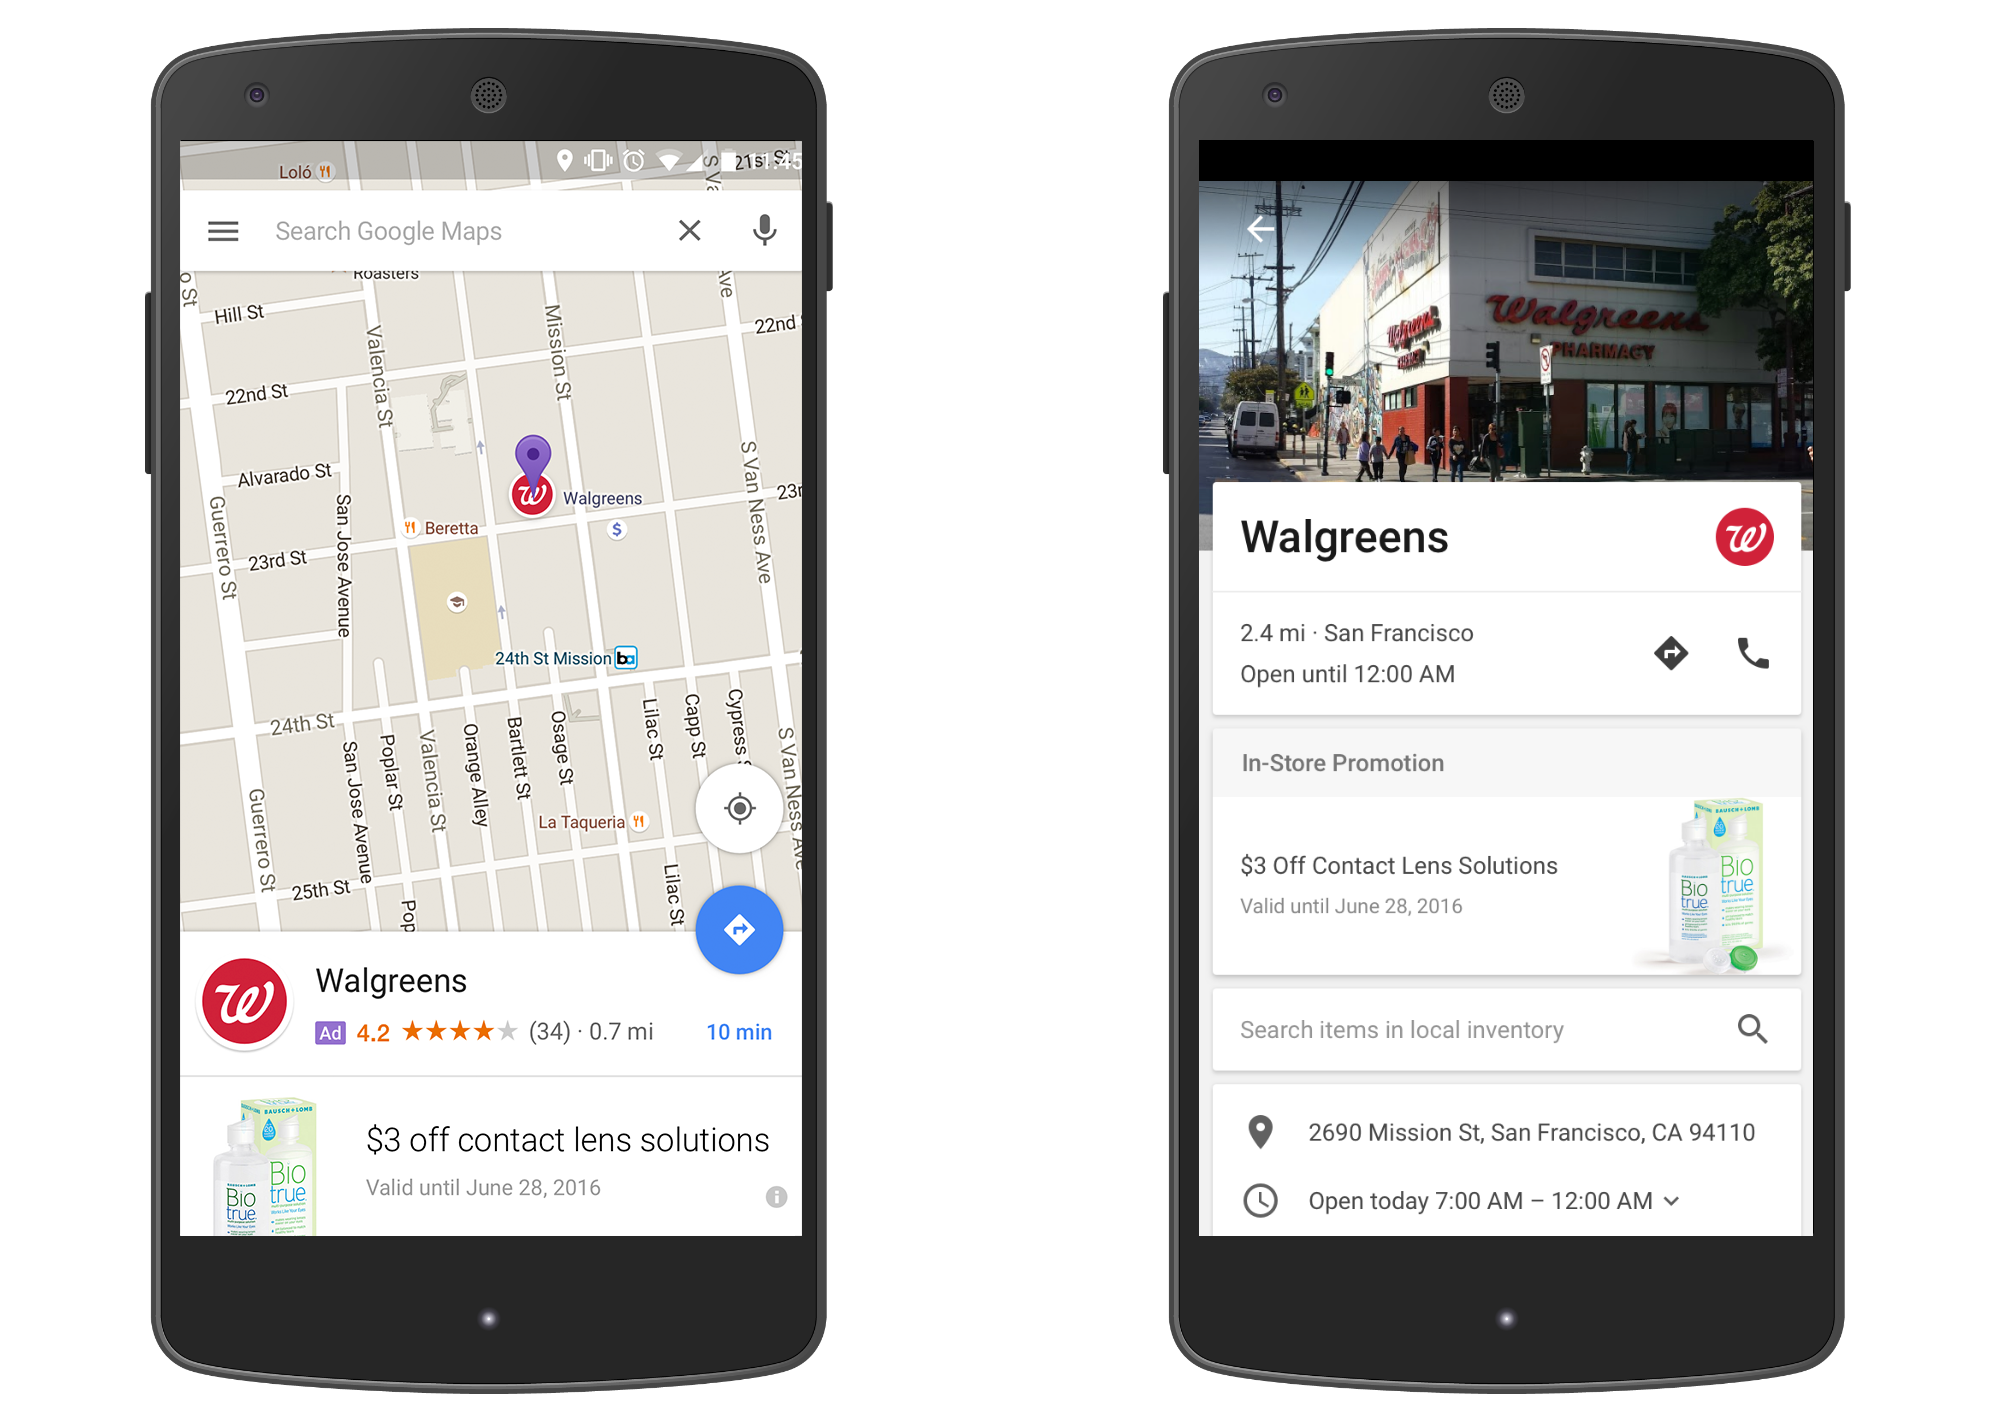 New Google Maps ads will drop nded pins in your search ... on red book advertising, 7 eleven advertising, sony advertising, bulk email advertising, instagram advertising, streeteasy advertising, avaya advertising, technicolor advertising, sea monkey advertising, blu advertising, wechat advertising, quickbooks advertising, holiday marketing advertising, coca-cola advertising, parts store advertising, fb advertising, surface pro advertising, ebook advertising,